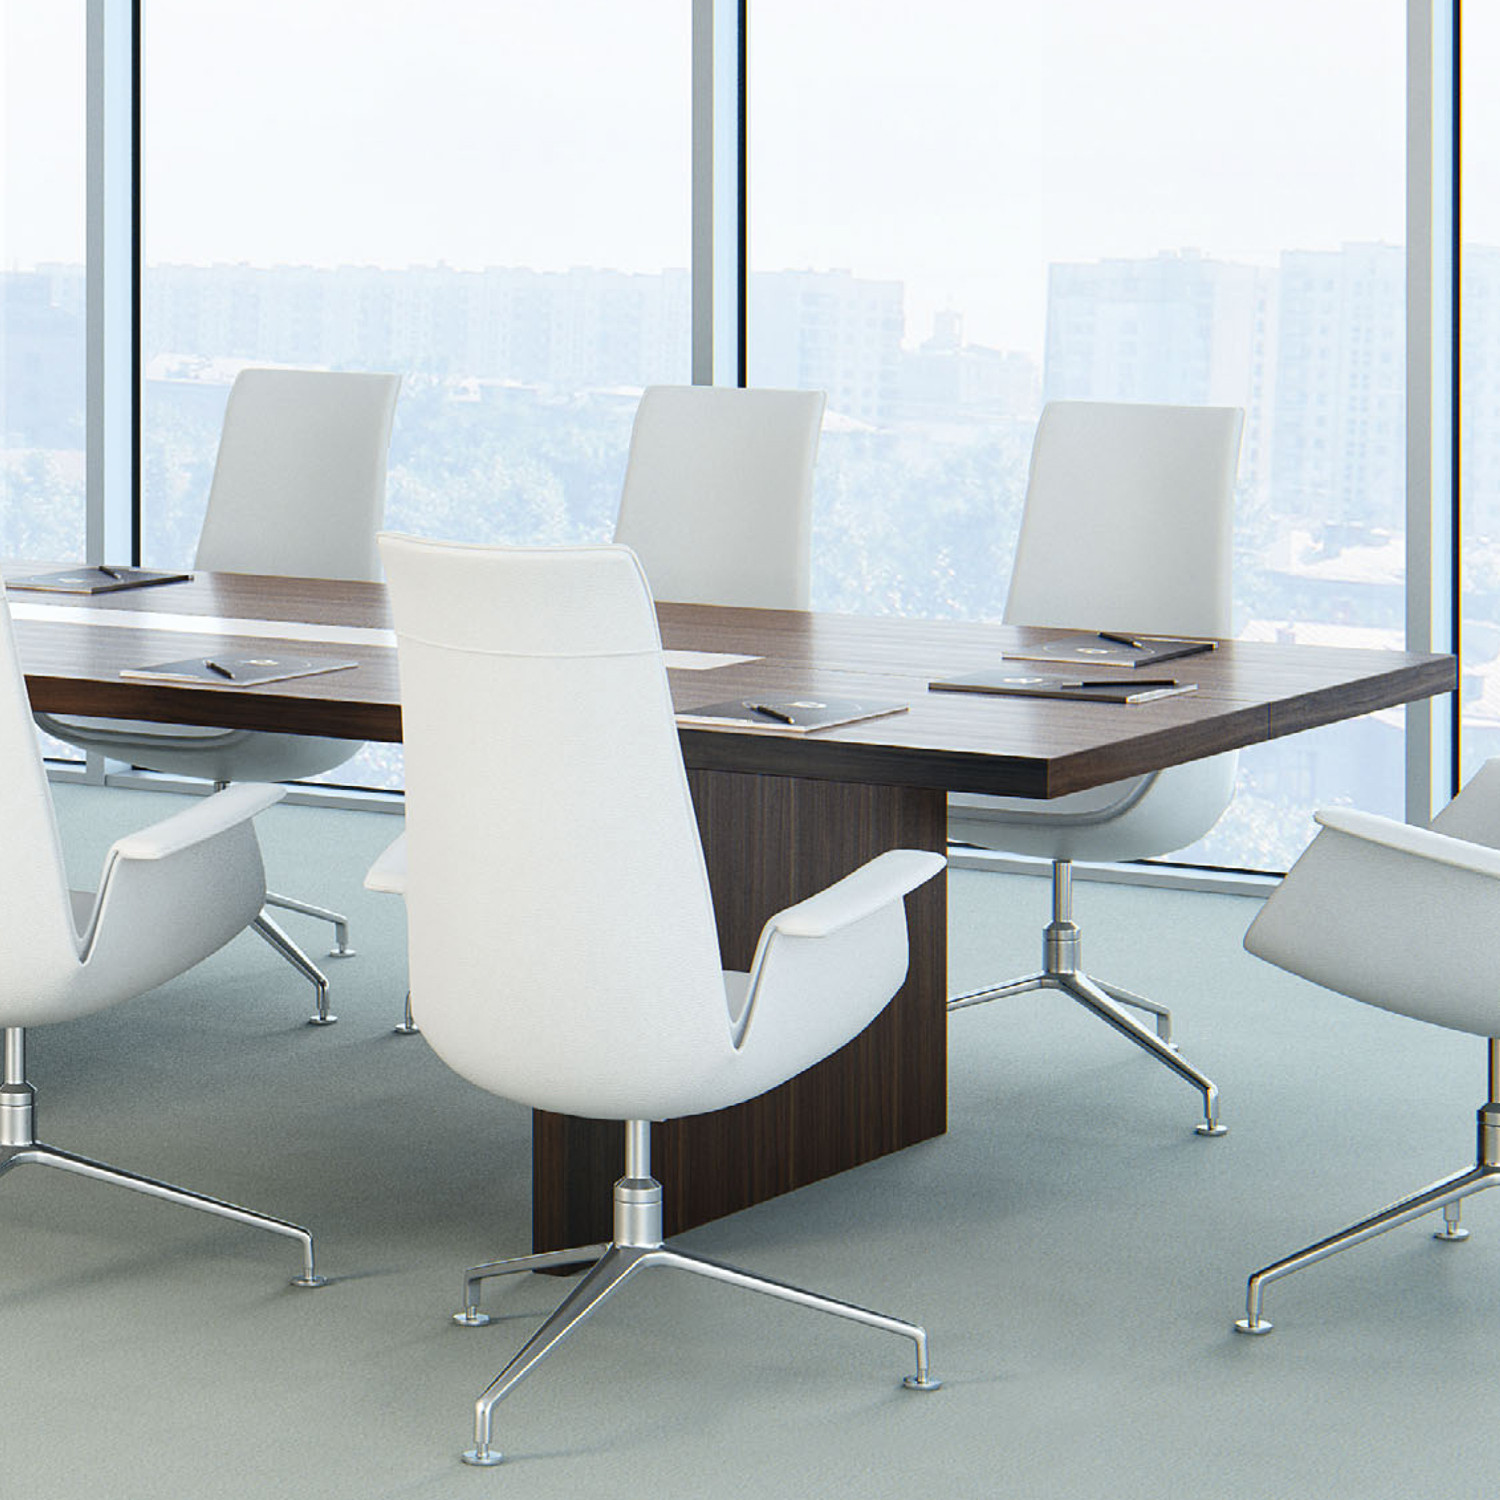 FK Conference Chairs by Walter Knoll